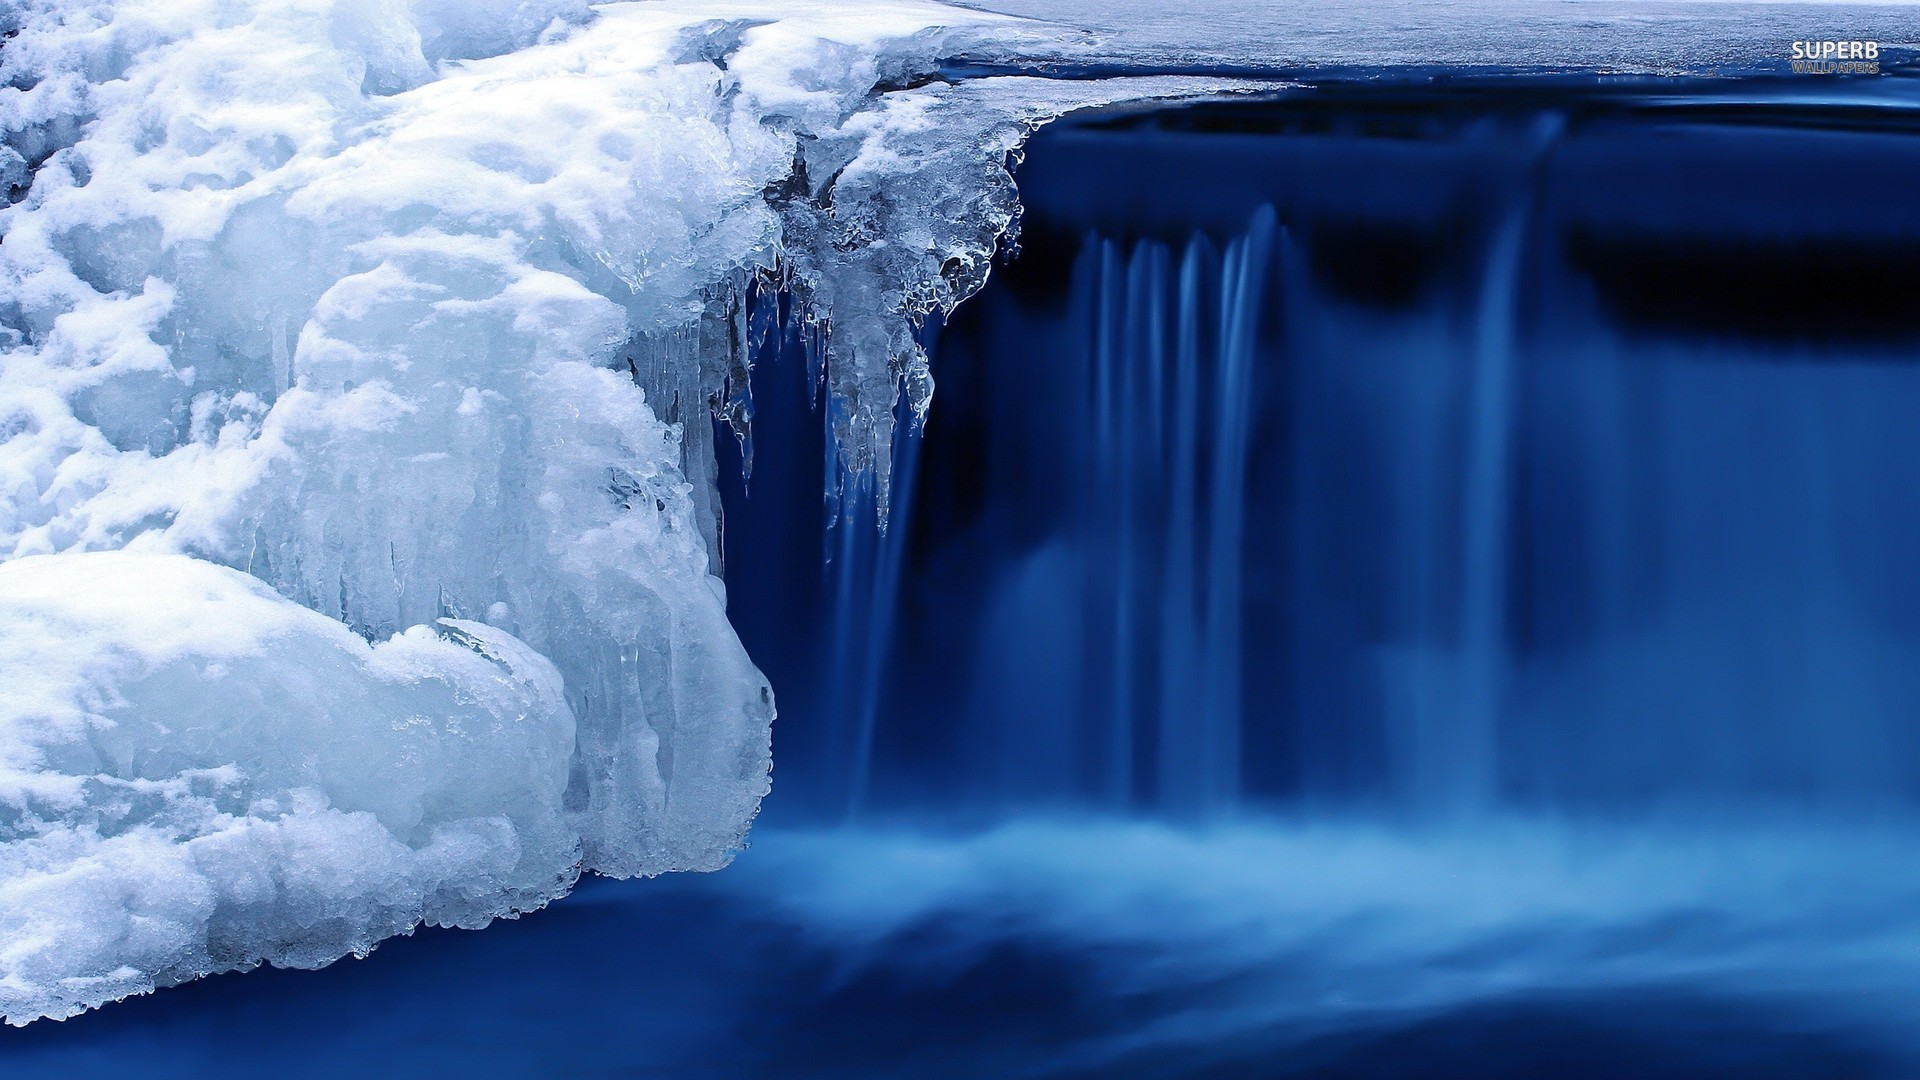 Ice Waterfall Timelapse winter wallpaper 1920x1080 136901 1920x1080